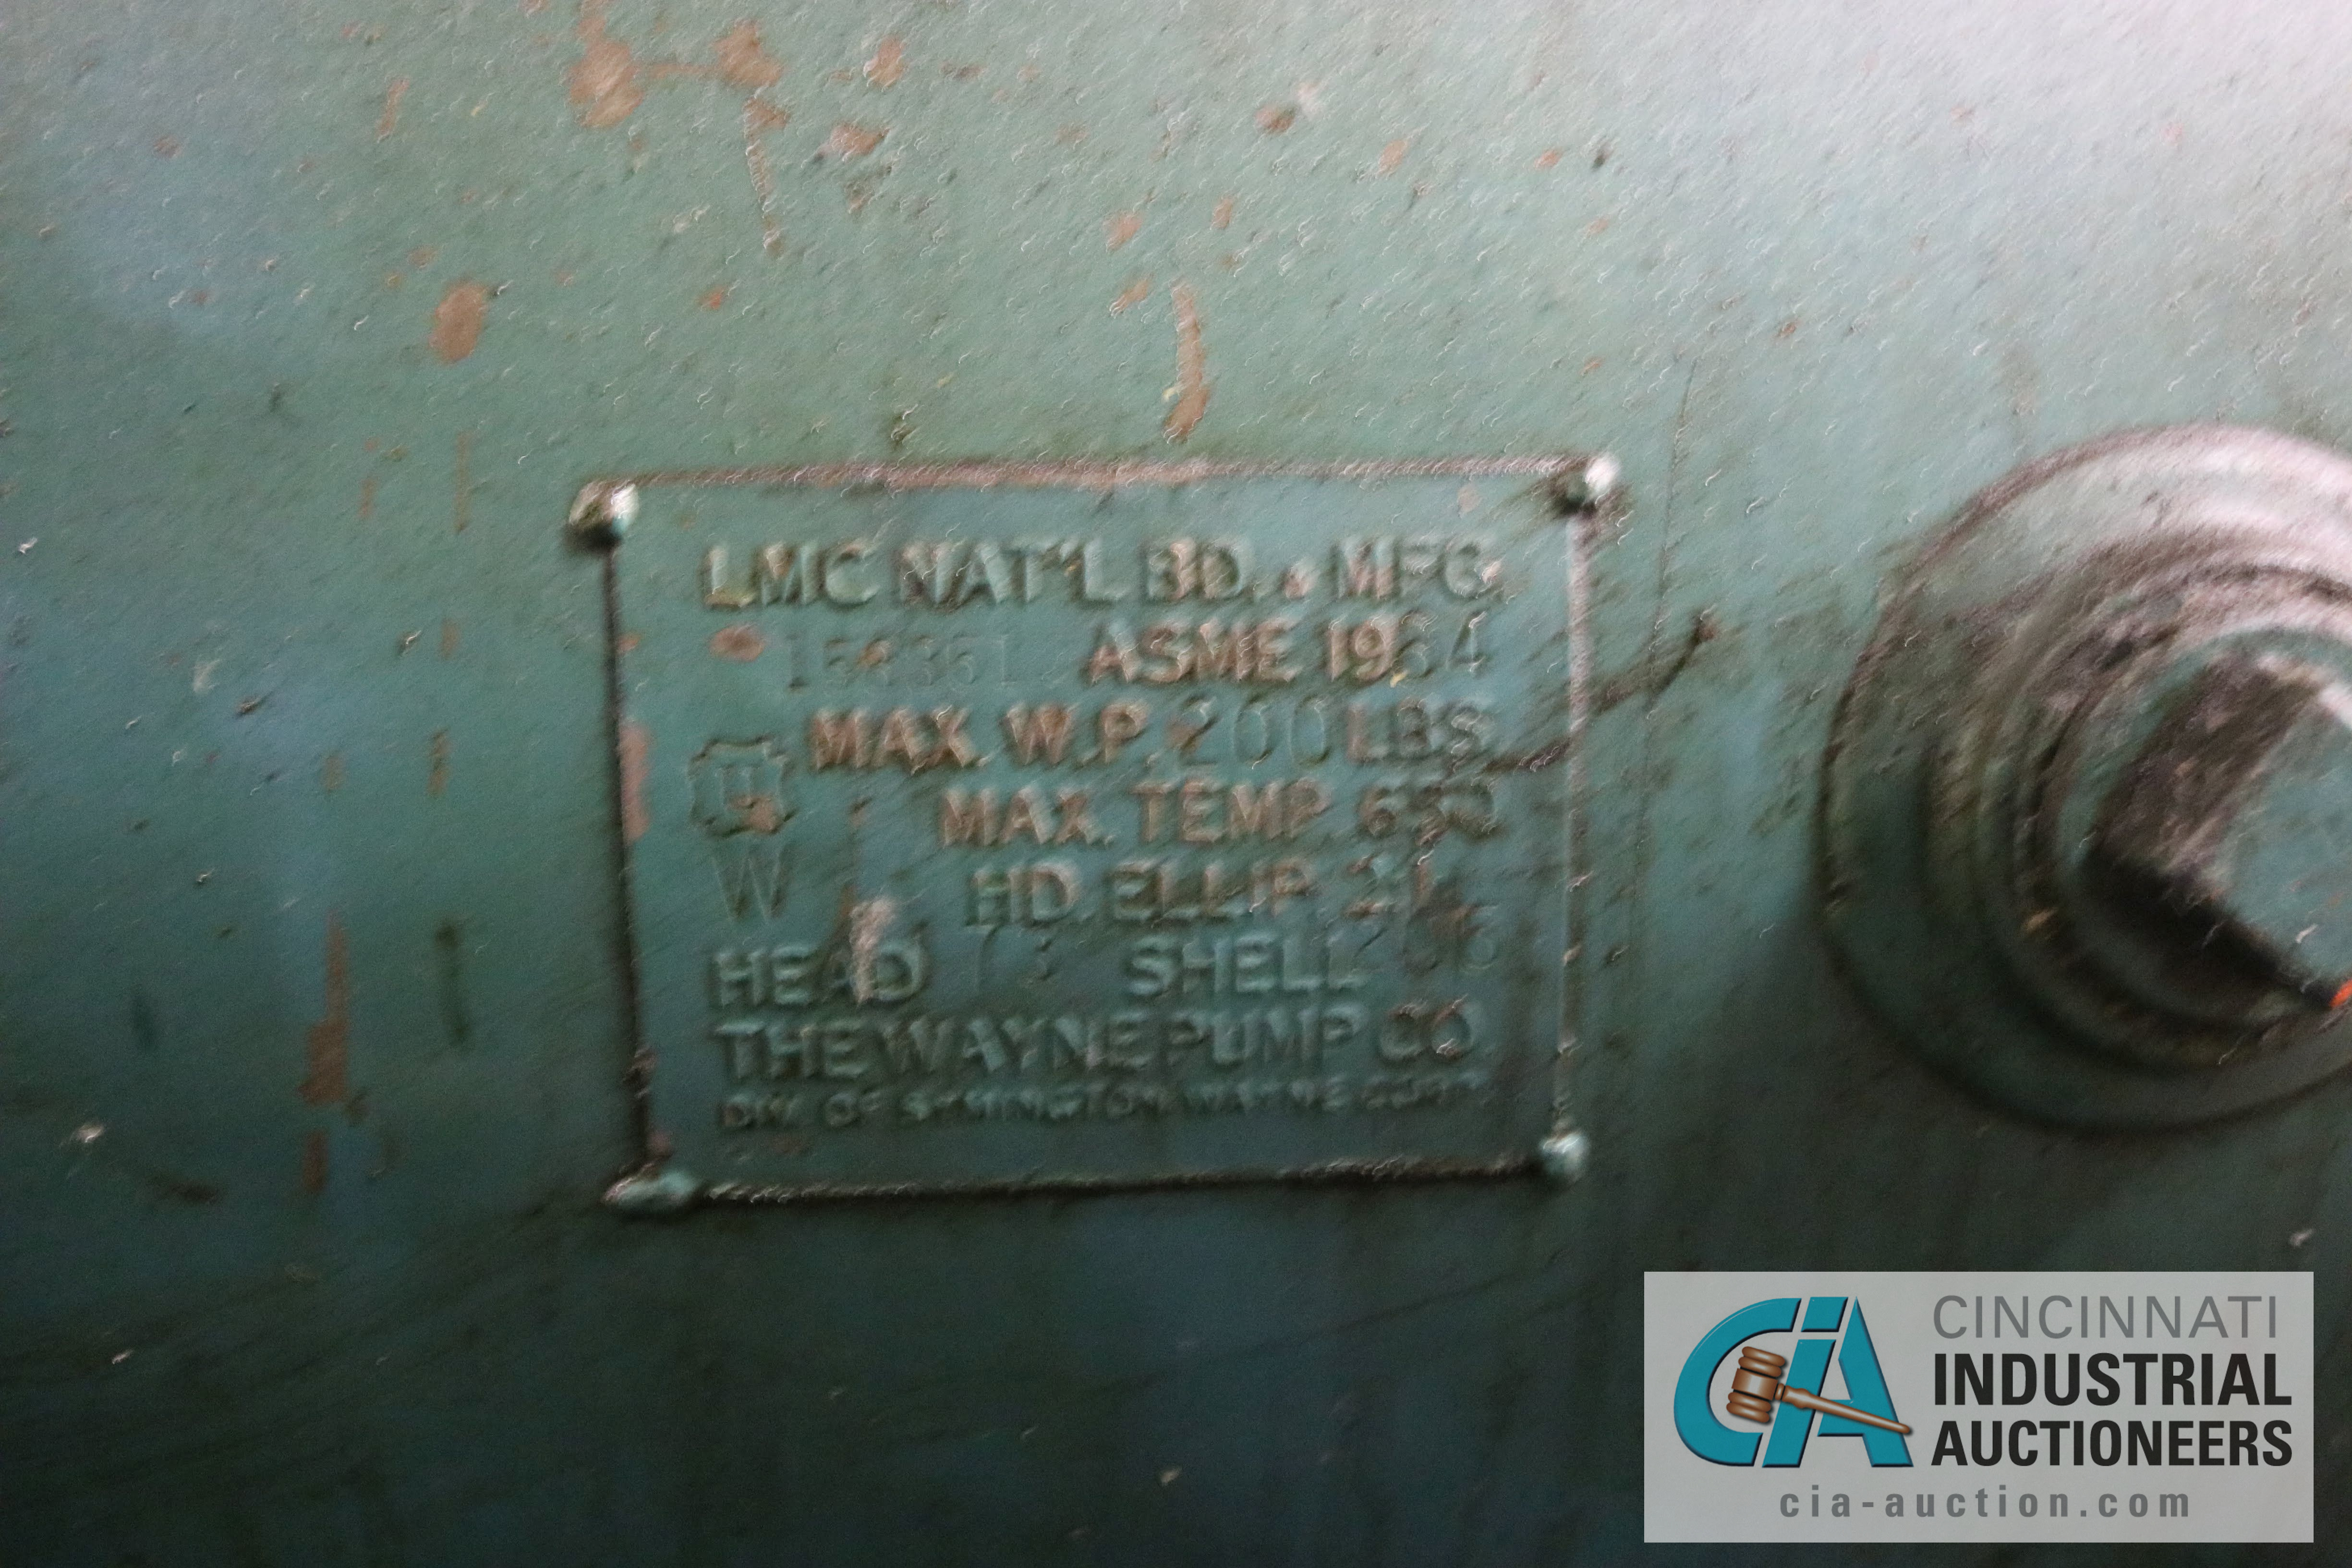 20 HP HORIZONTAL AIR COMPRESSOR - $100.00 Rigging Fee Due to Onsite Rigger - Located in Bryan, Ohio - Image 3 of 3